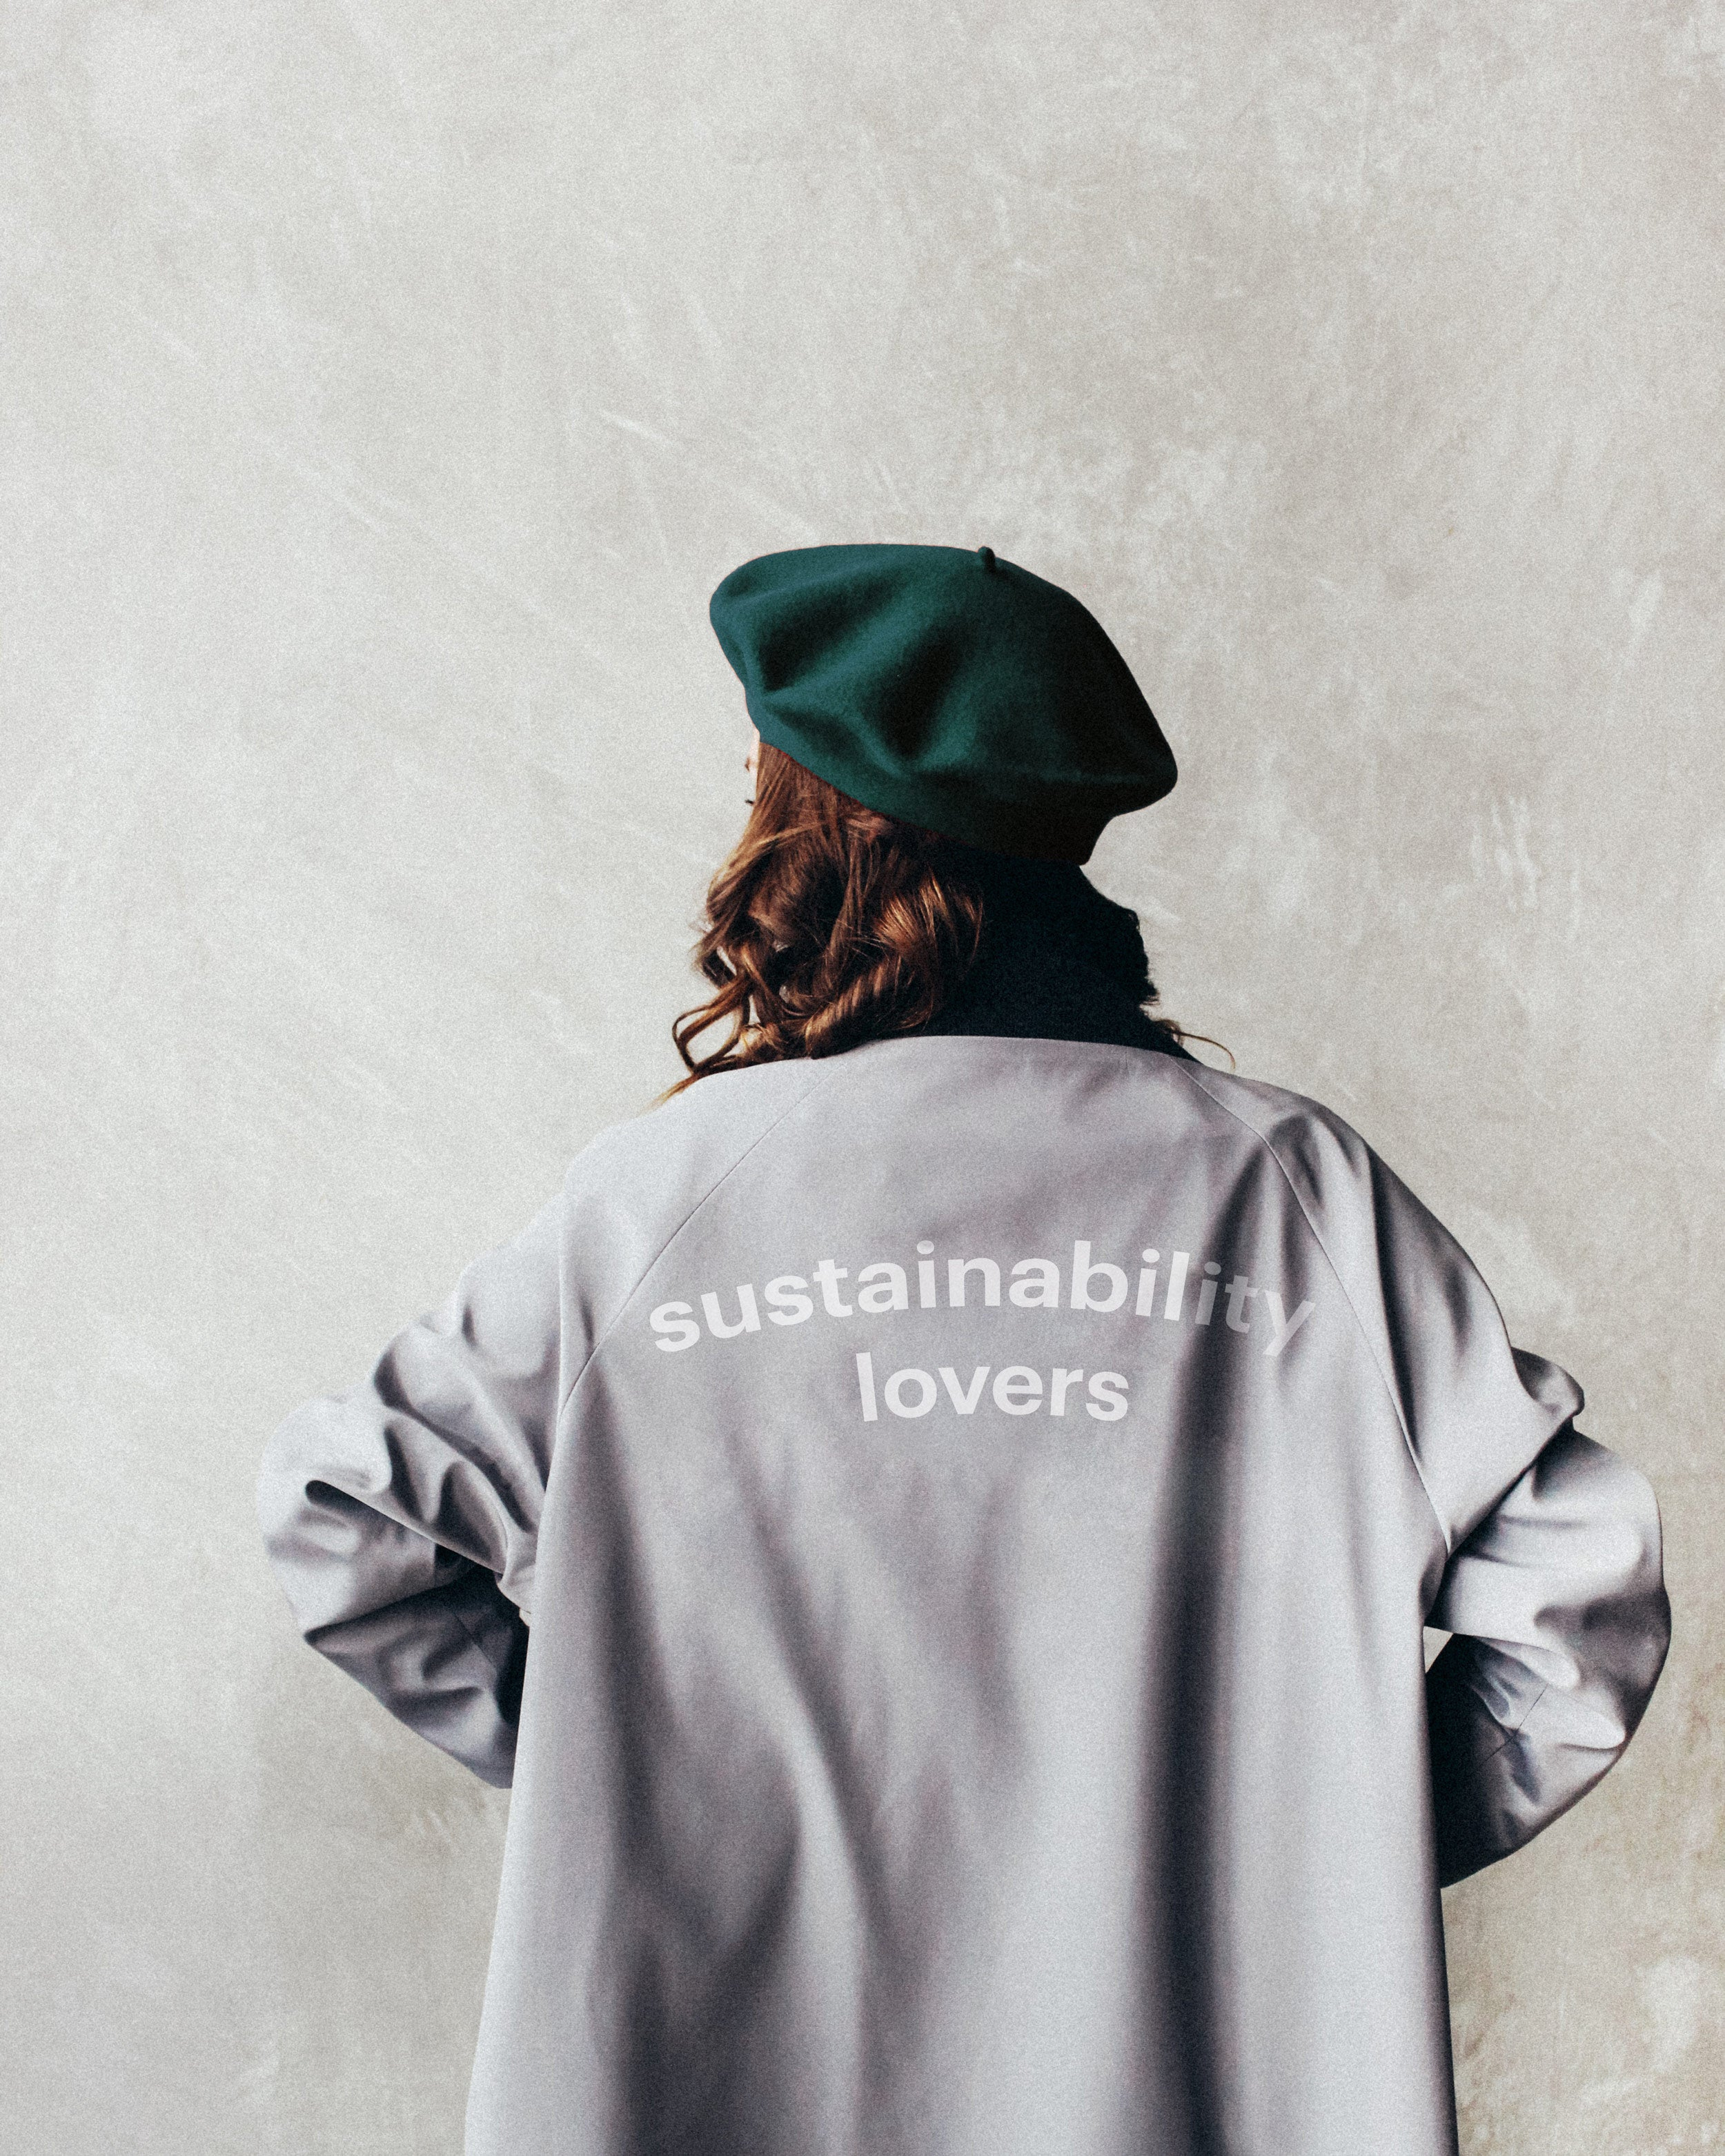 SUSTAINABILITY LOVERS